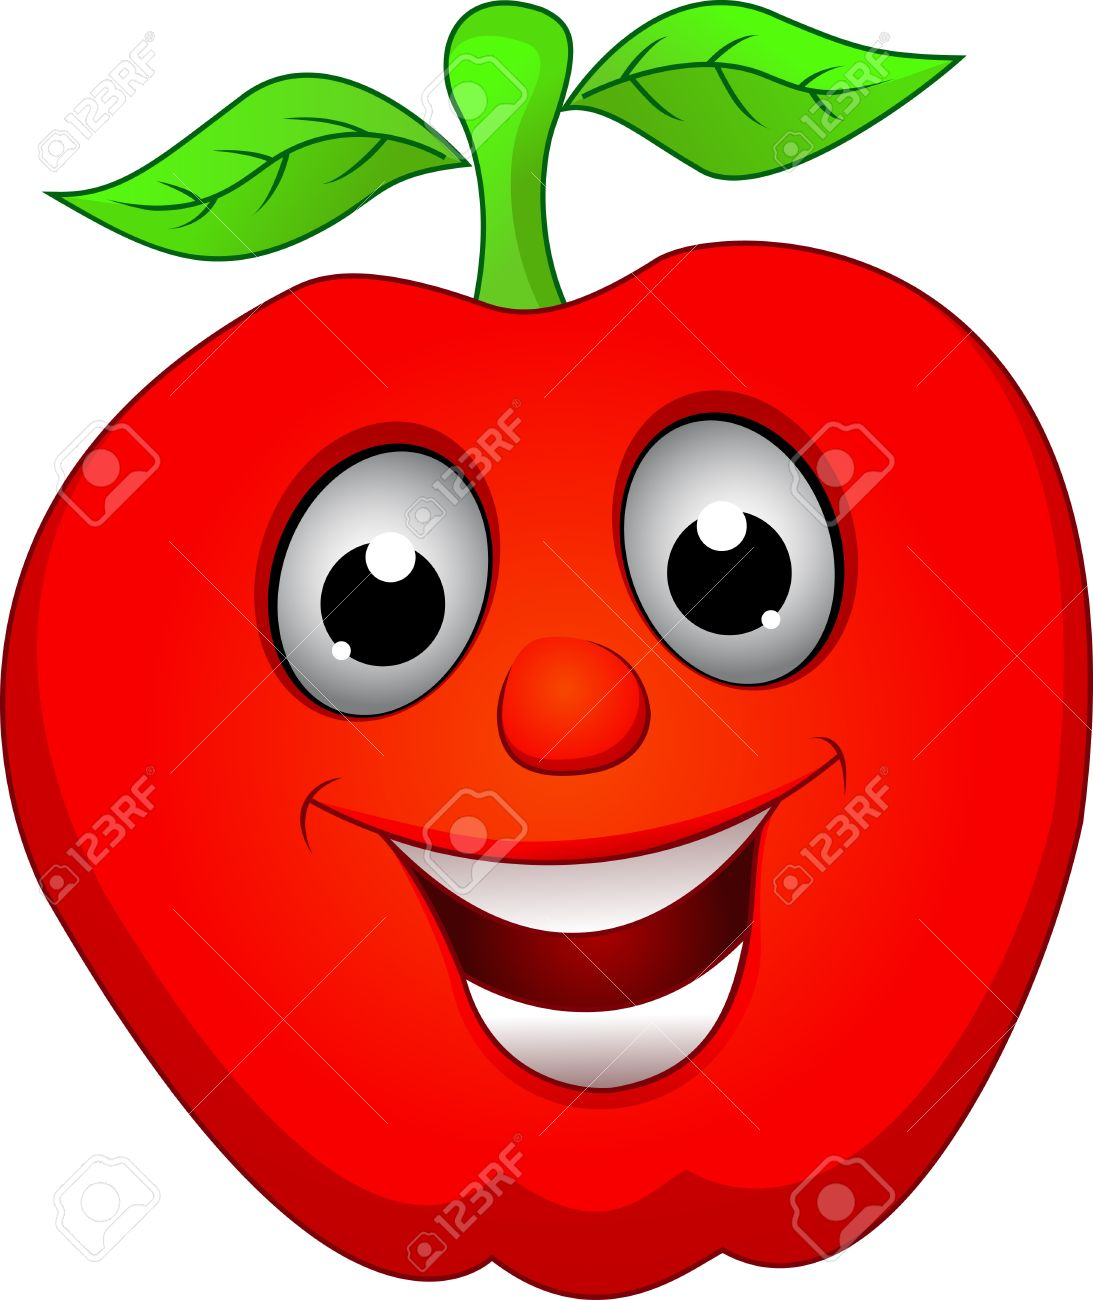 Clipart Apple With Face.